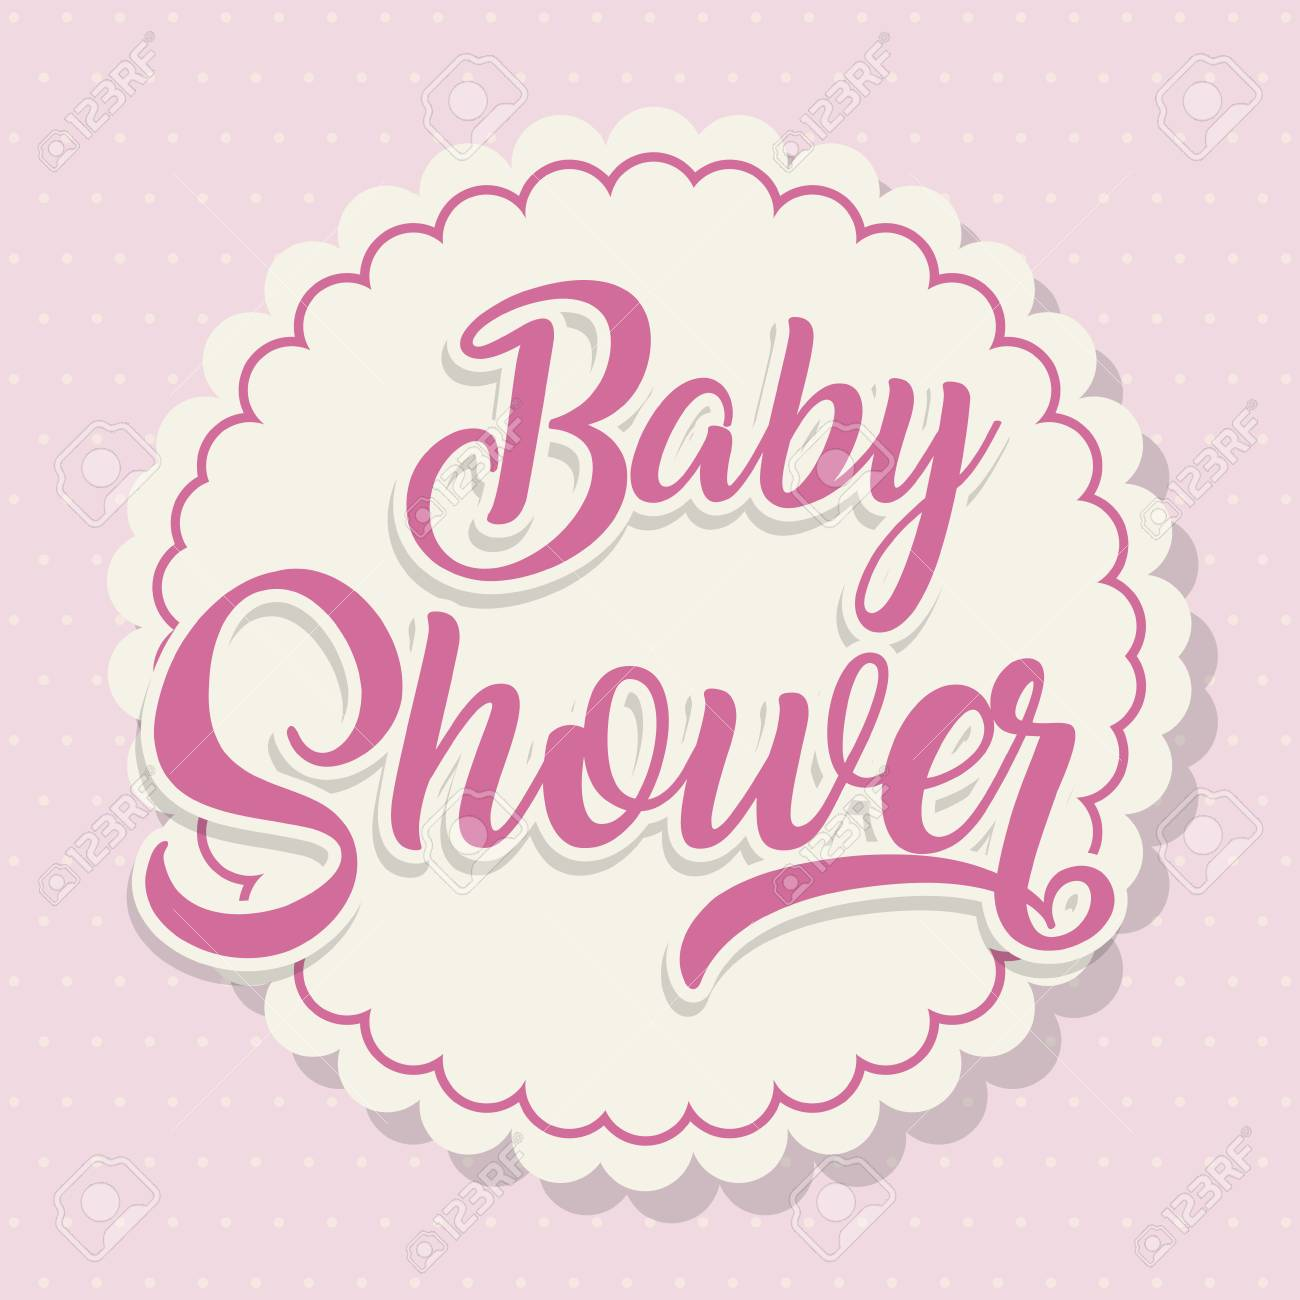 Baby shower card over pink background. colorful design. vector illustration  Stock Vector - 76536716